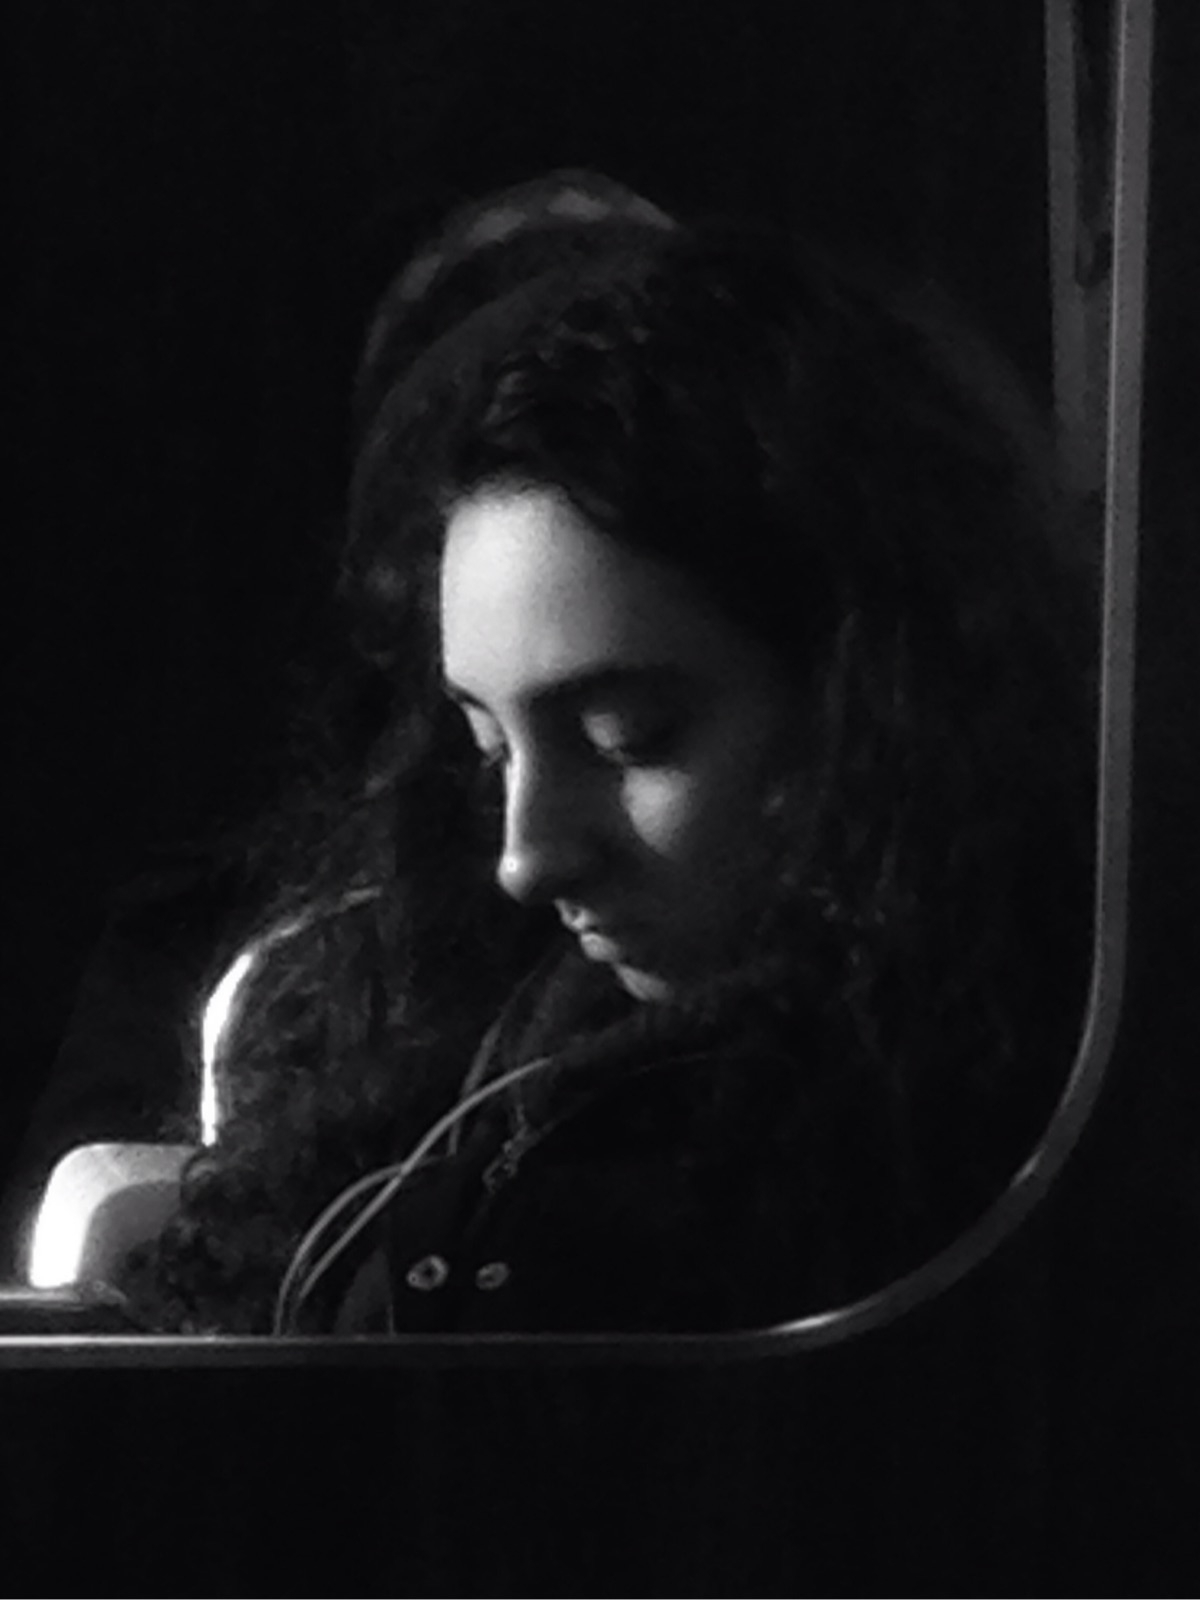 Madonna Subway strangers train - electrachrome | ello